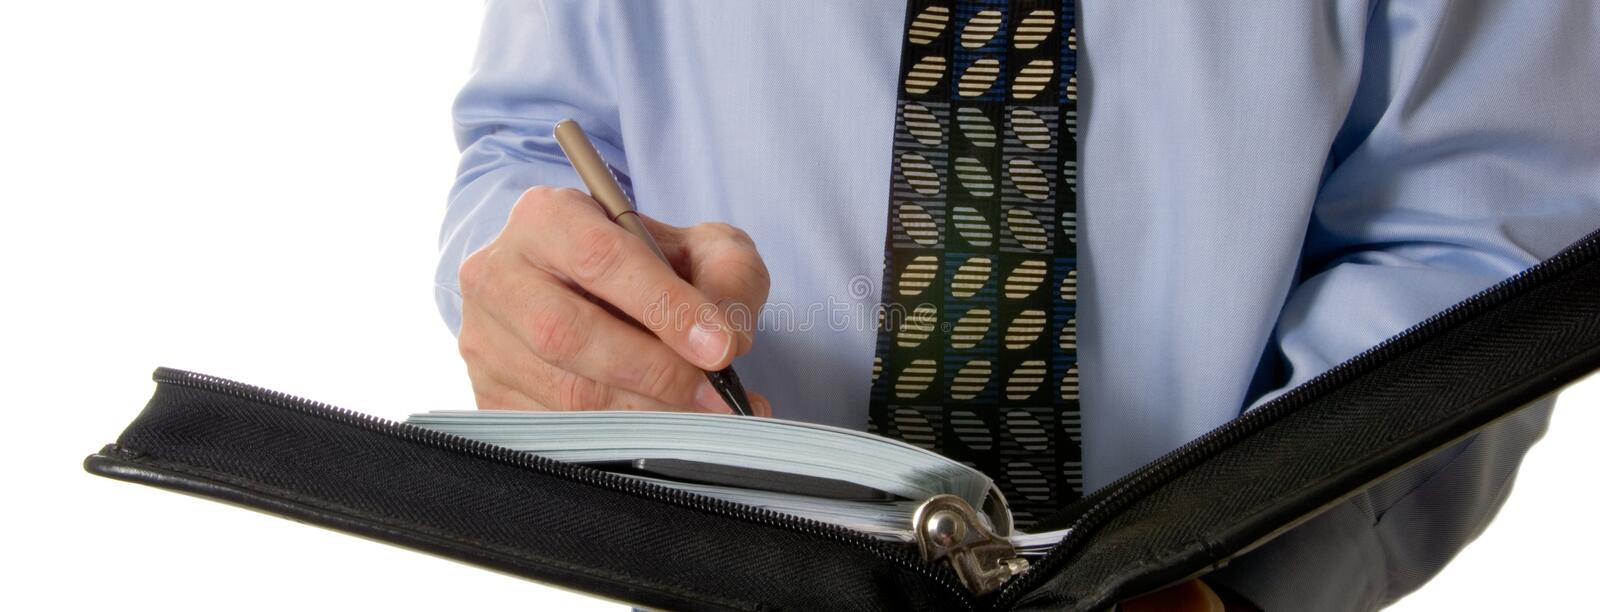 Download Business Man Writing In Leather Organizer Stock Photography - Image: 1998532